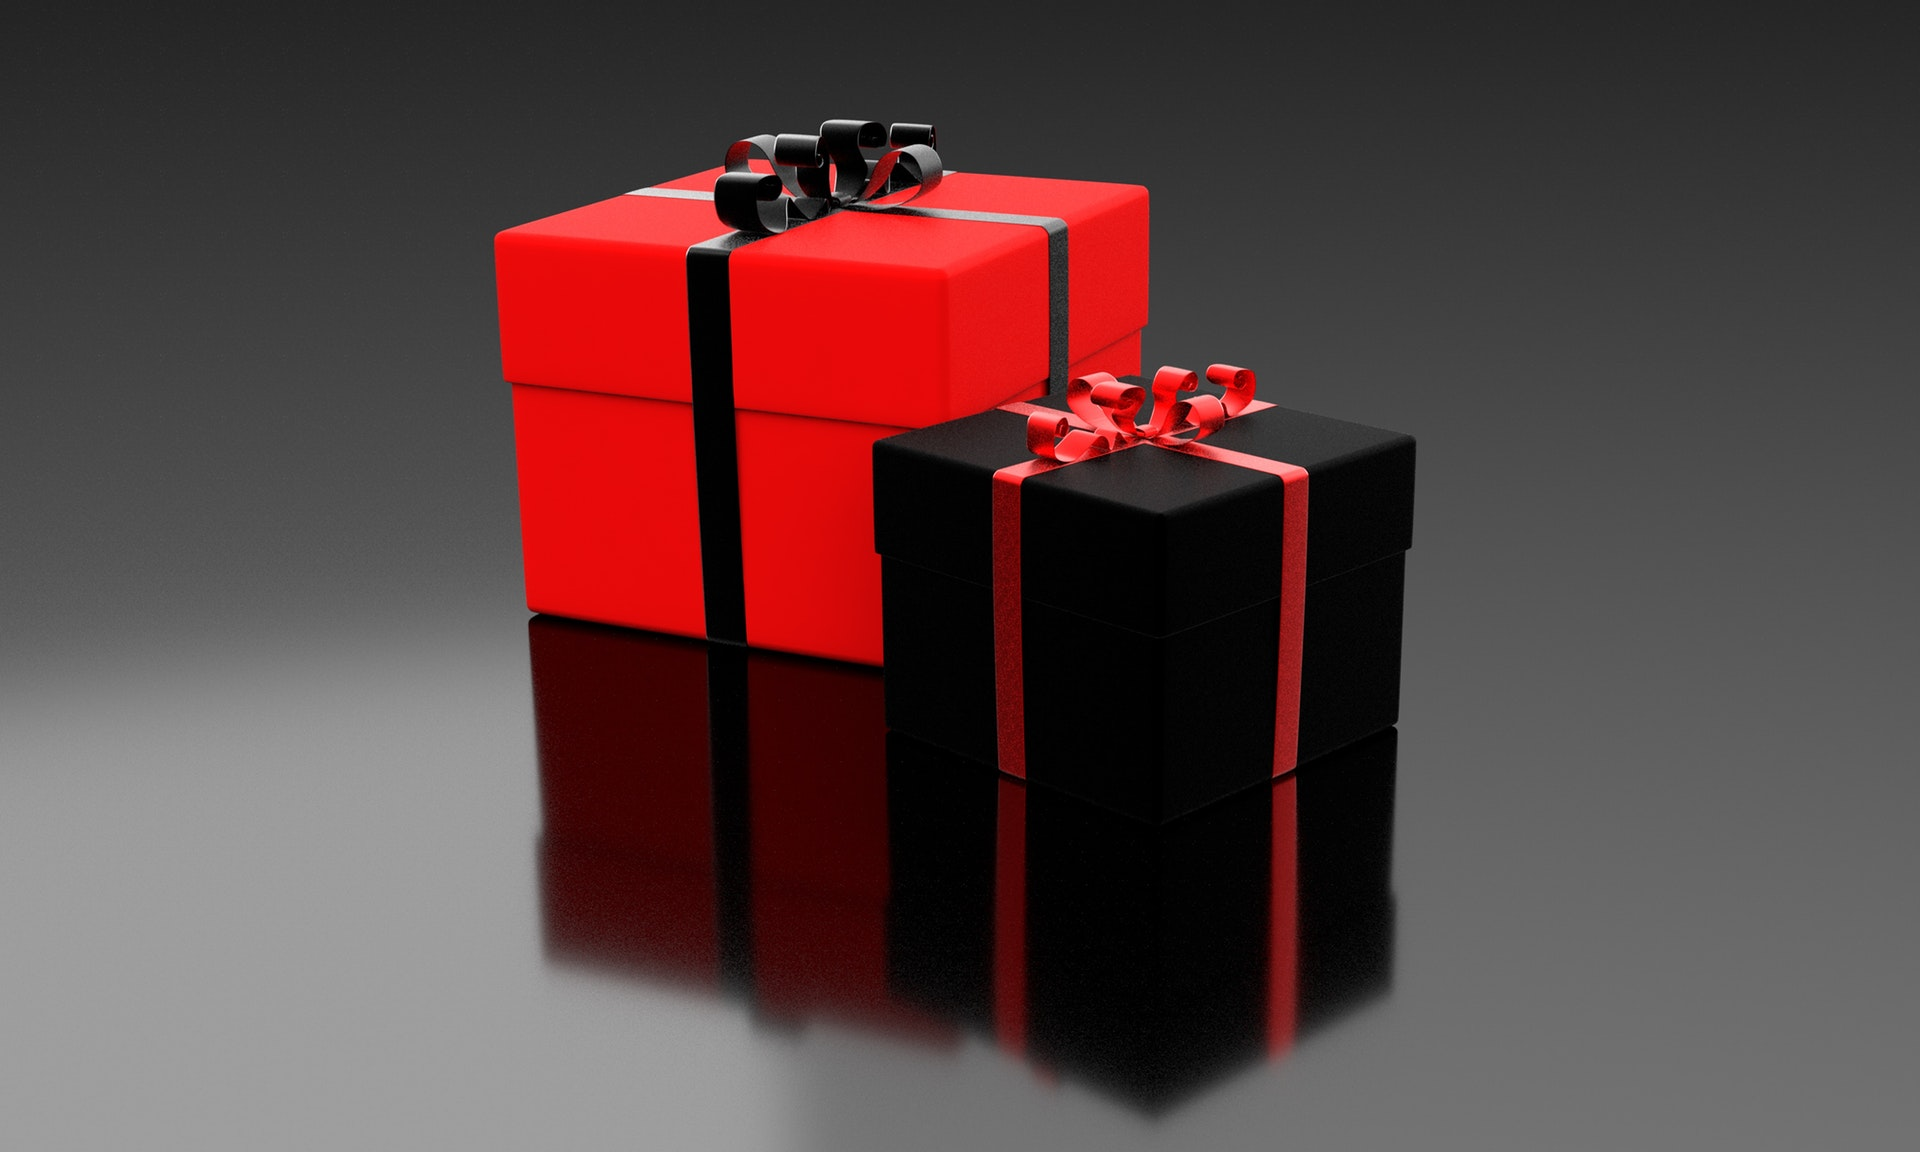 Free Gifts in Red and Black Gift Boxes